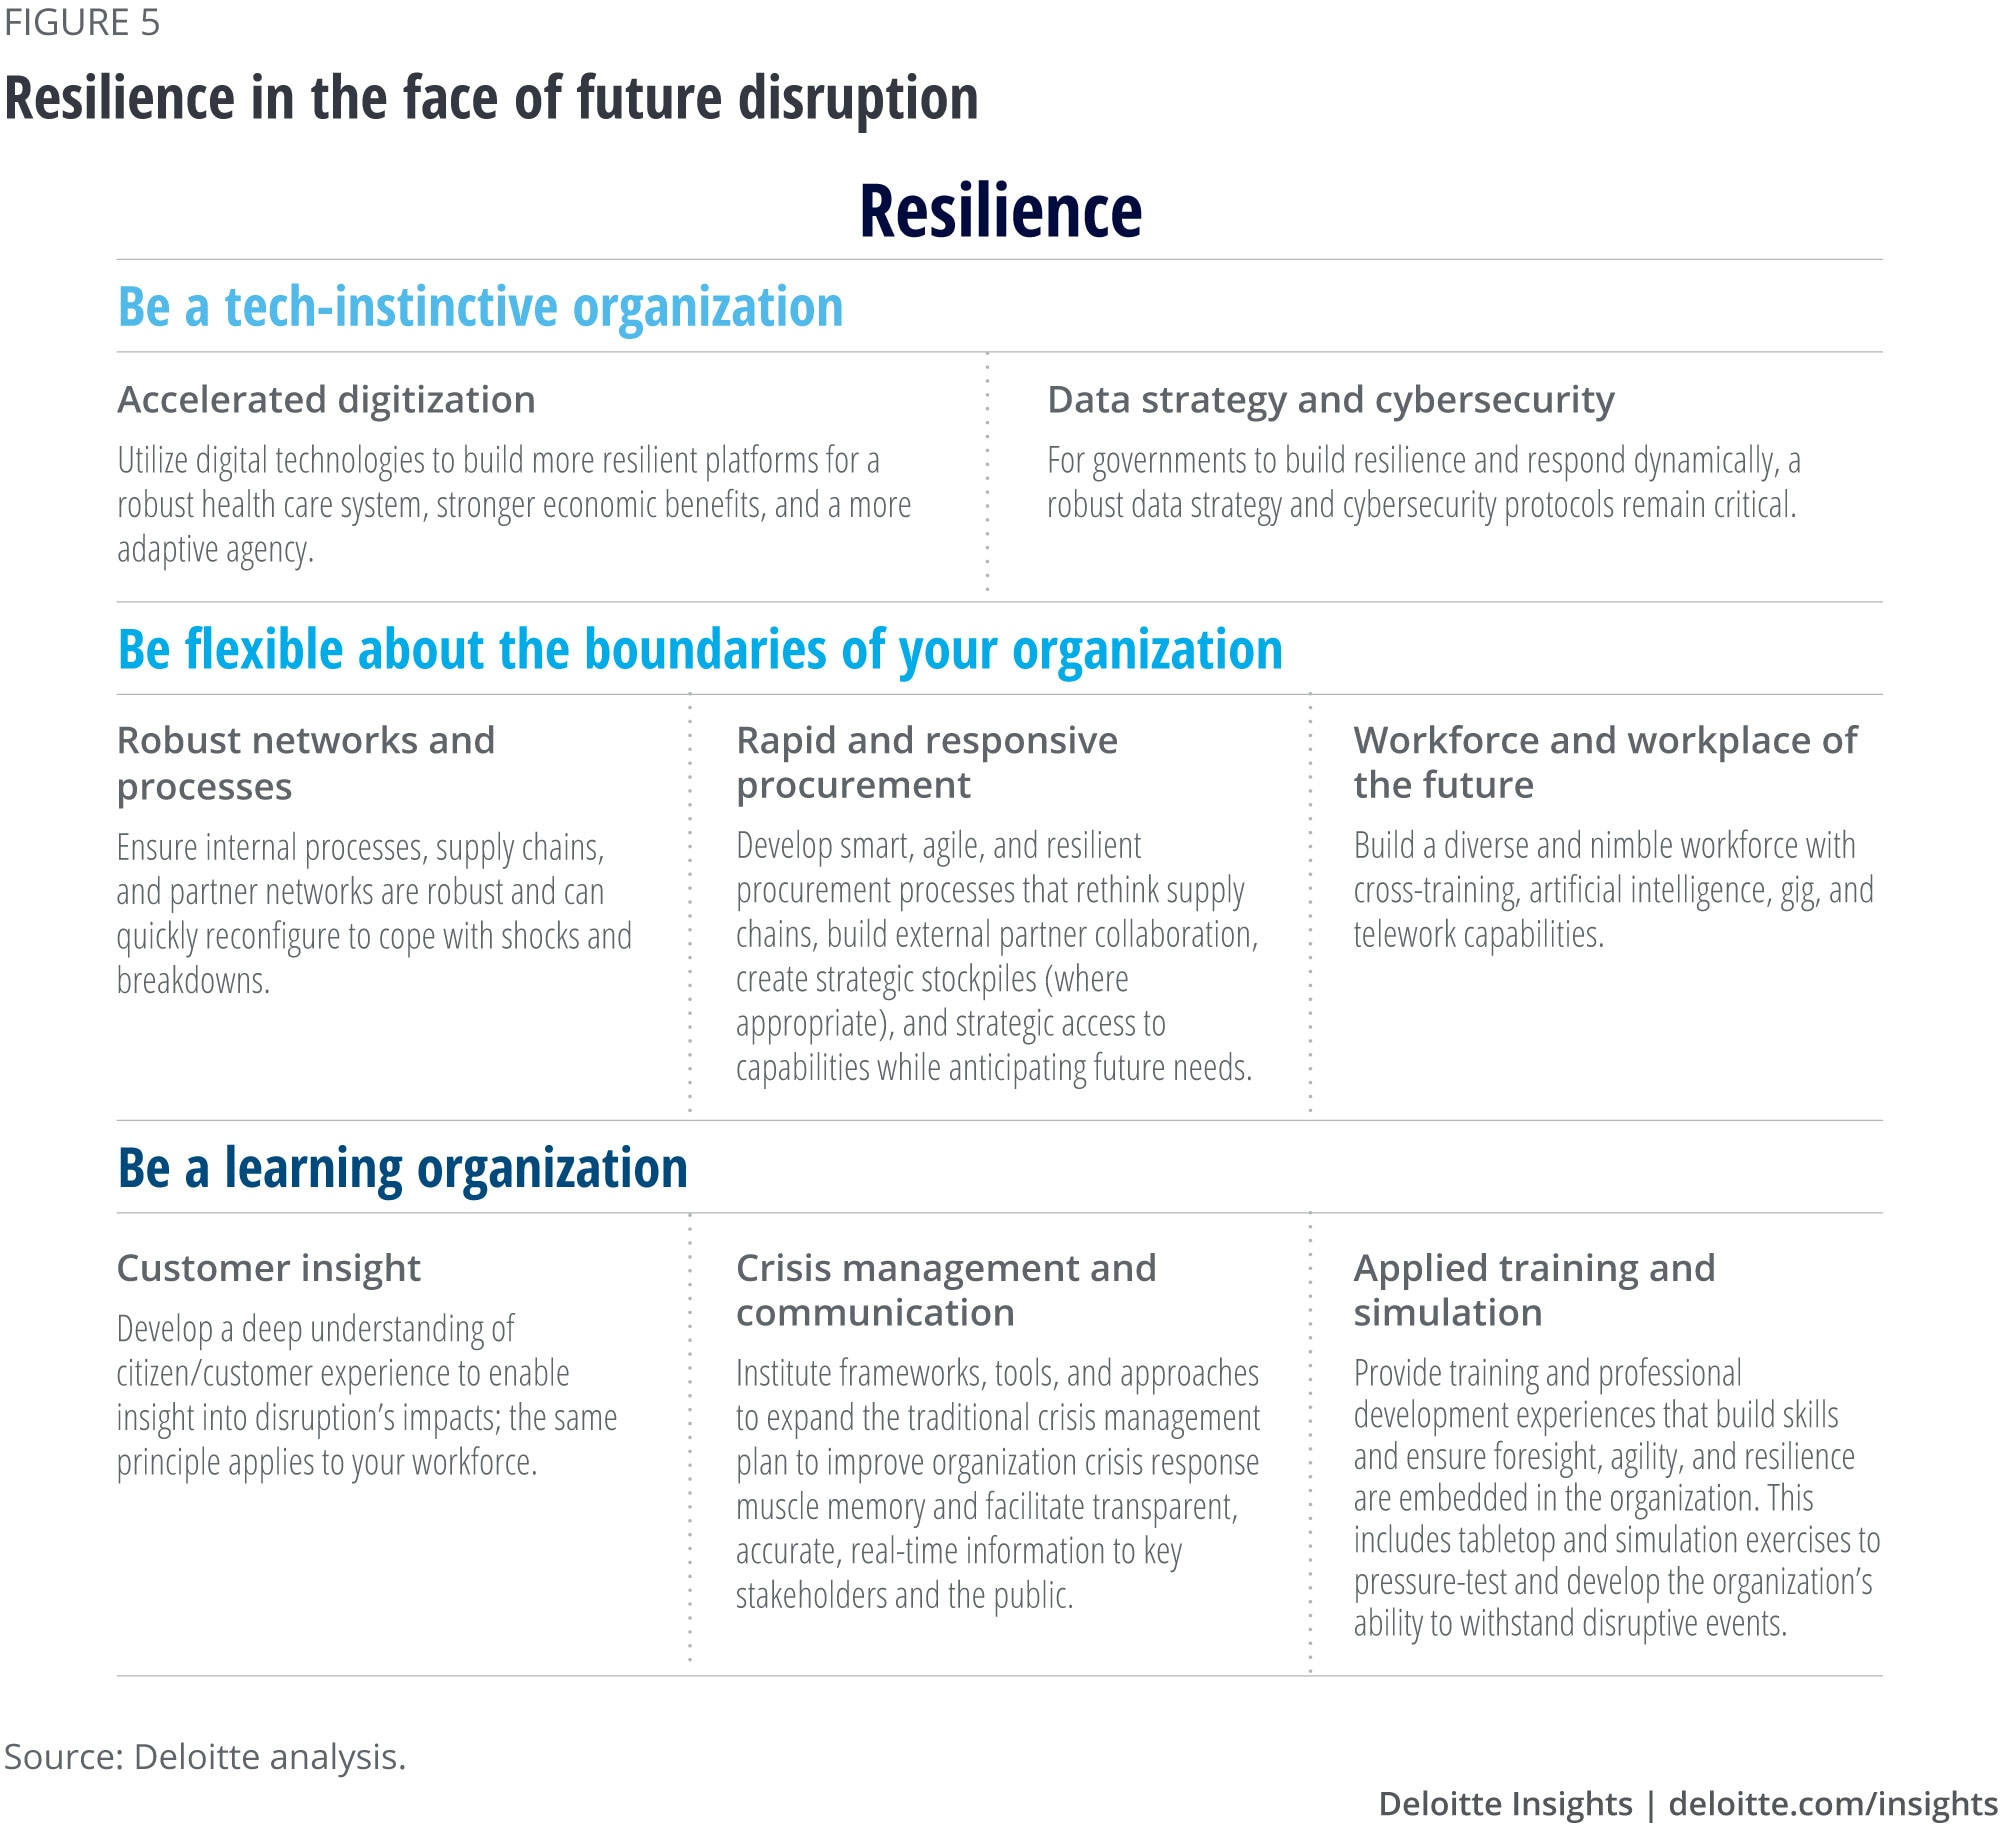 Resilience in the face of future disruption